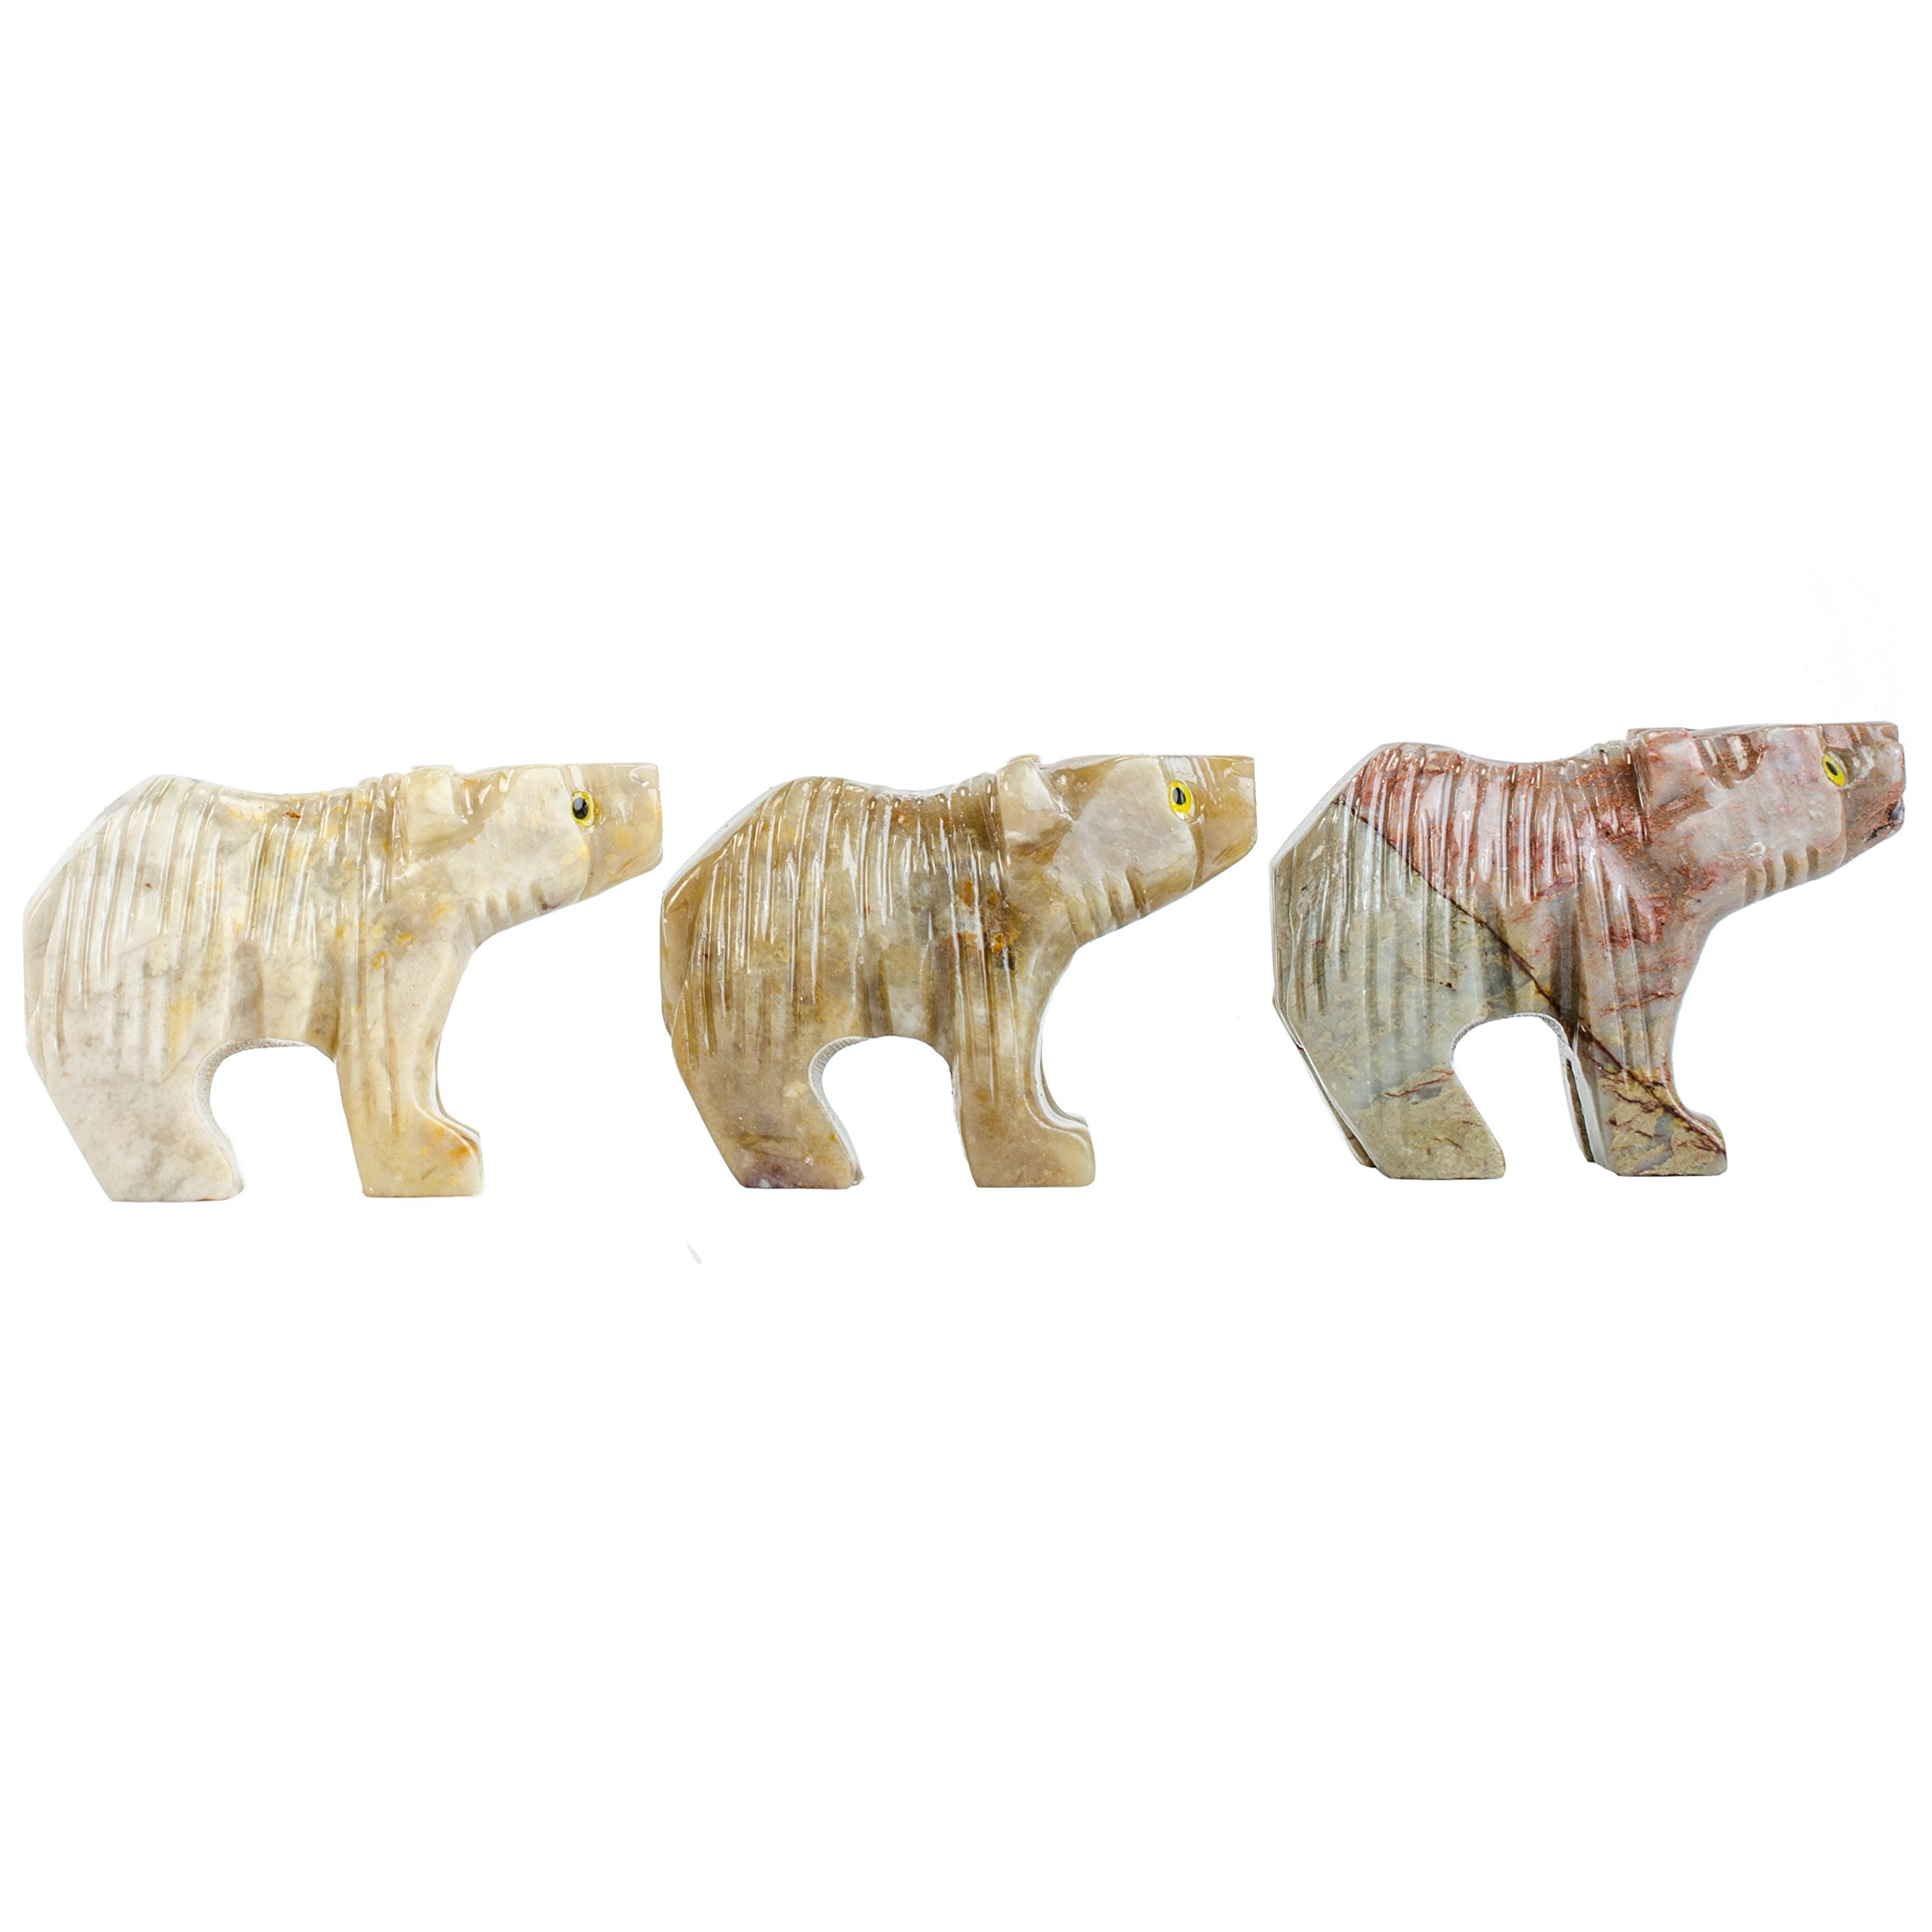 Fantasia Creations: 10 pcs Bear Soapstone Animal Figurine - Hand Carved by Fantasia's Master Artisans for Party Favors, Collecting, Wire Wrapping, Gifts and More!